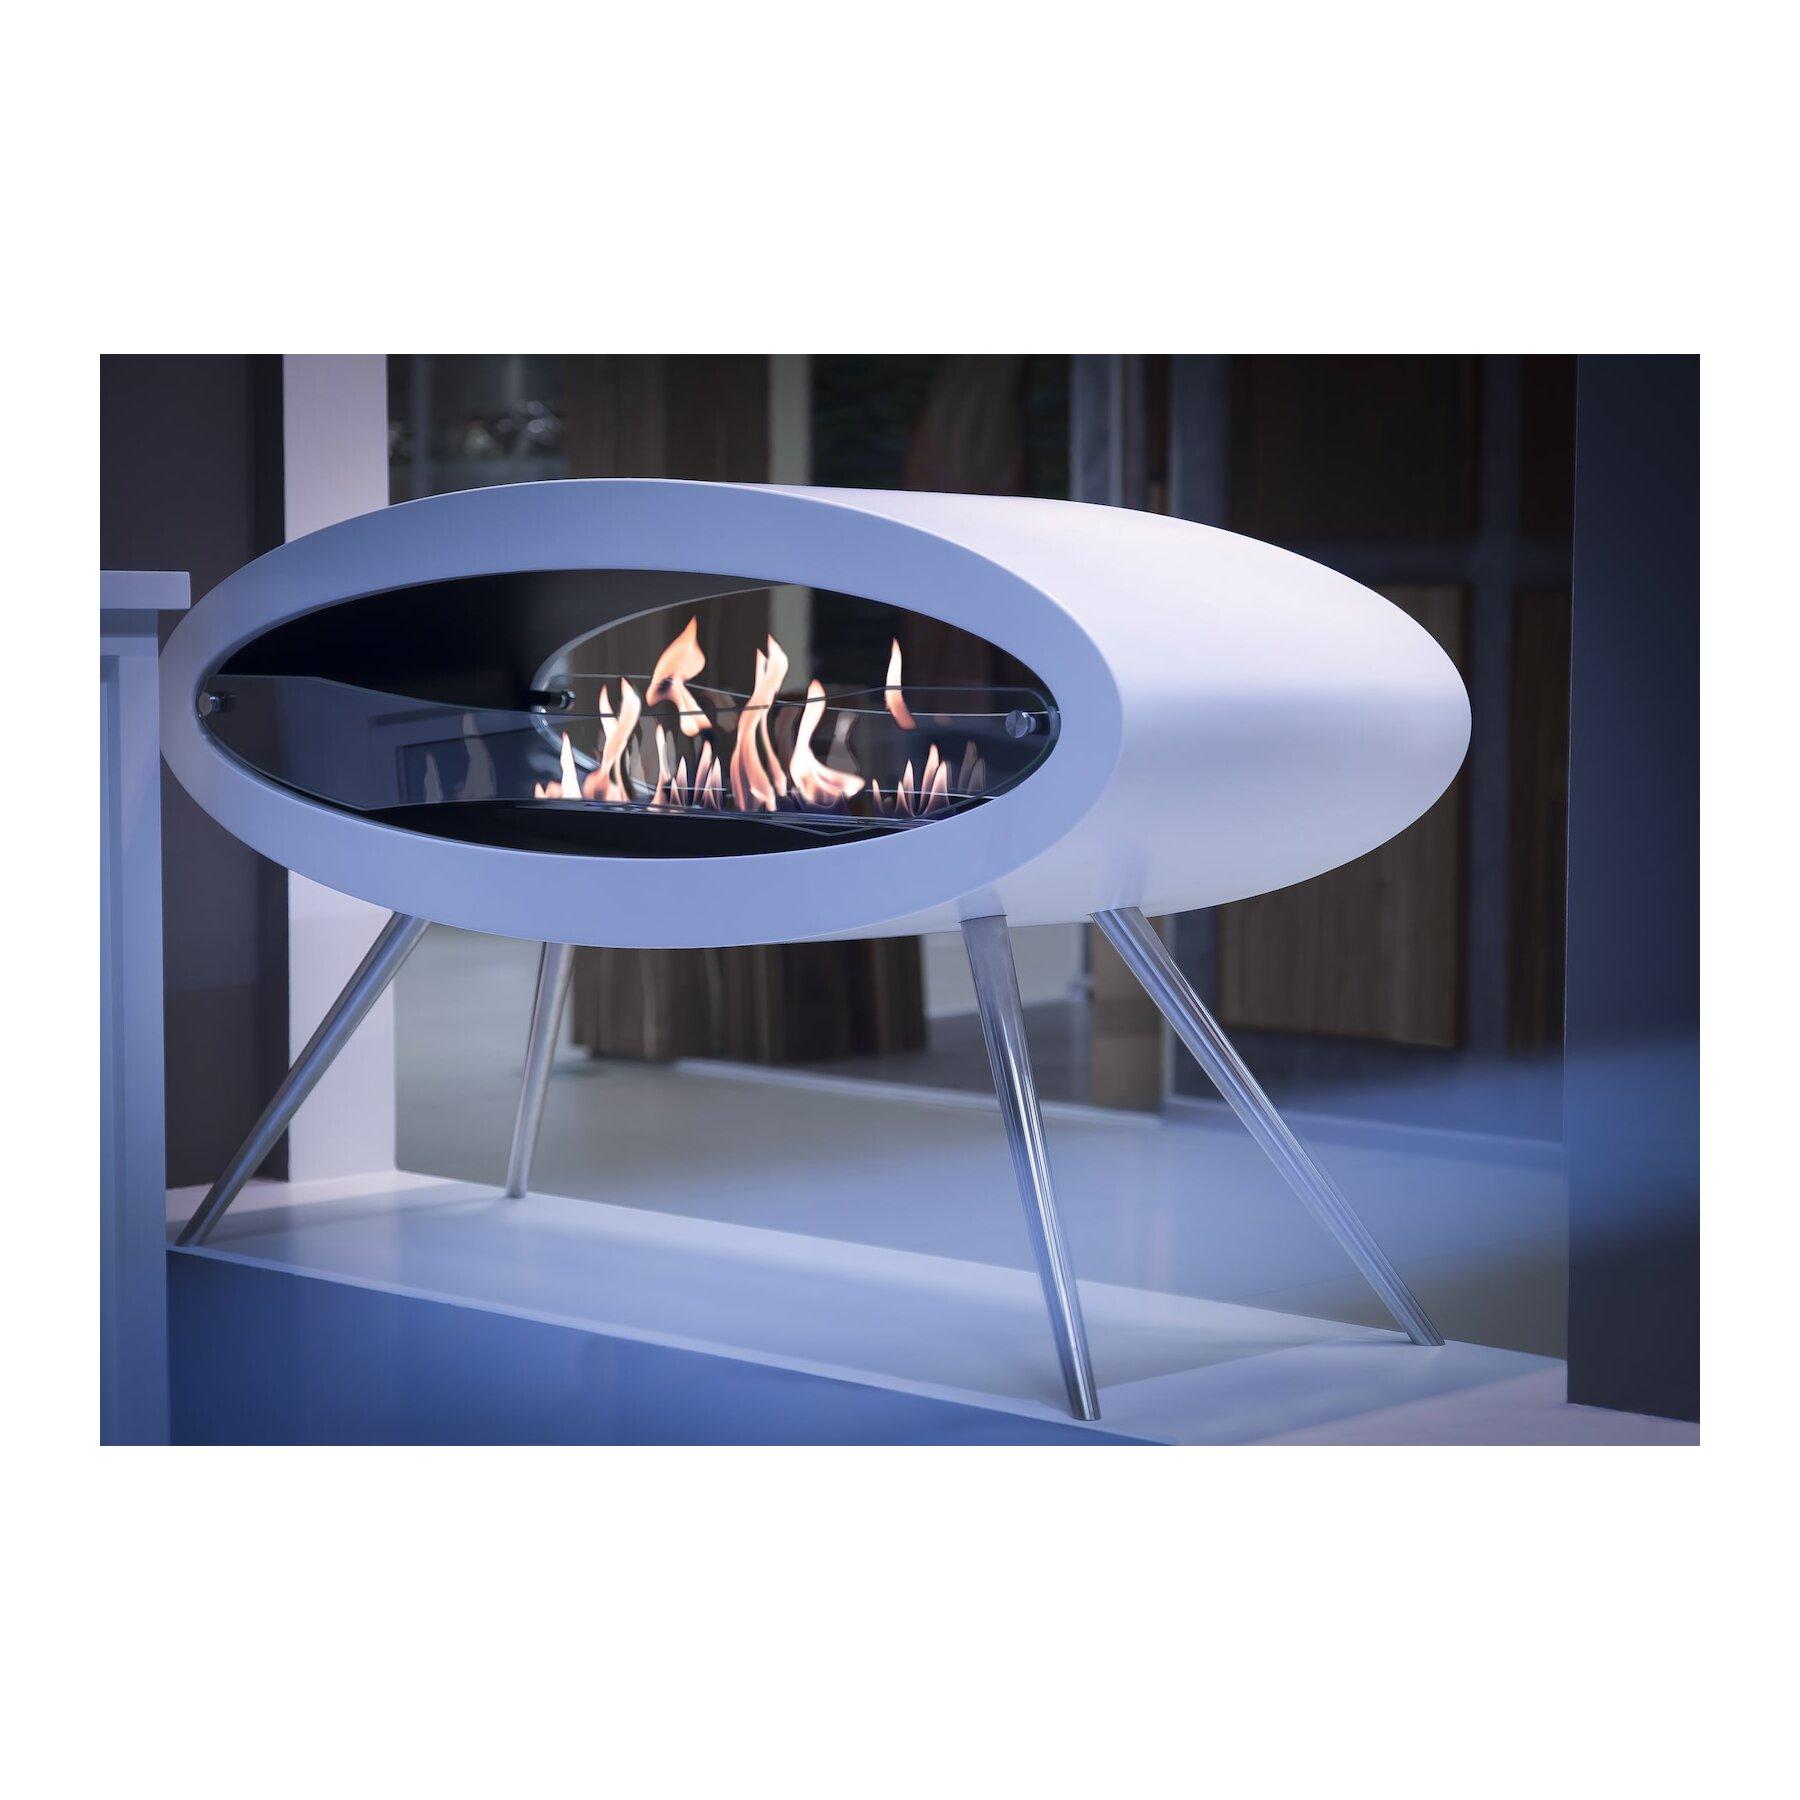 Decoflame Ellipse Flueless Fire: Decoflame Ellipse Design Ethanol Kamin Als Standkamin